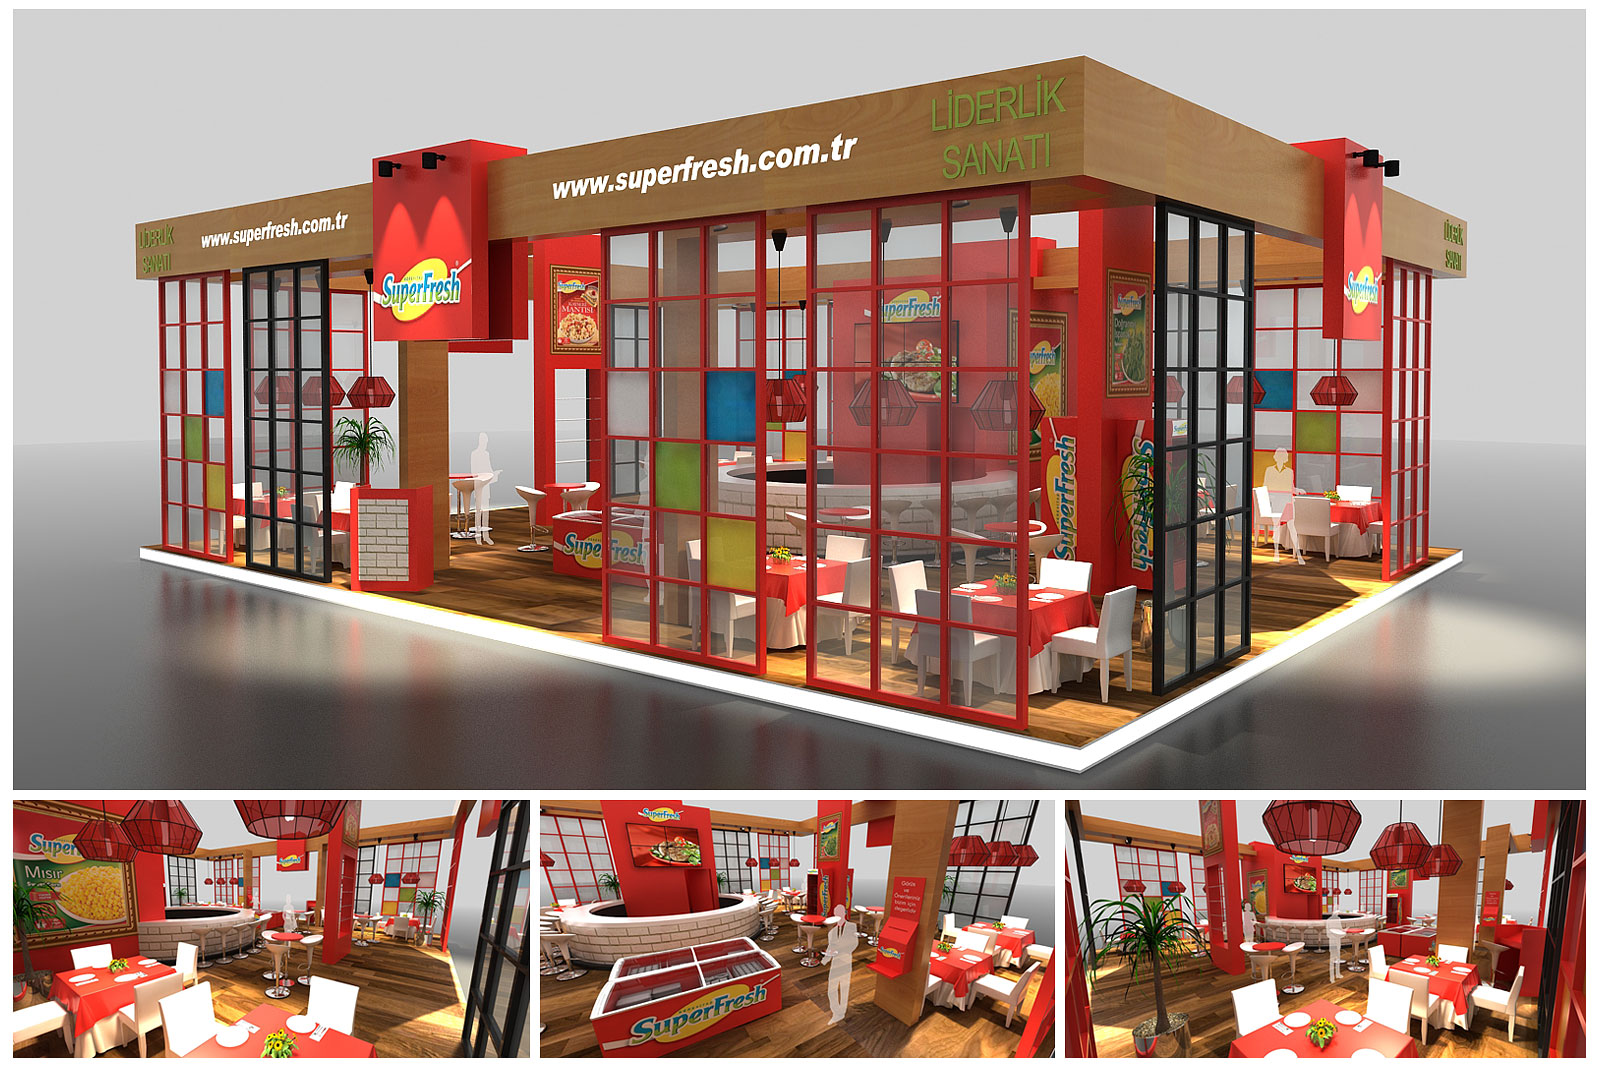 Superfresh Exhibition Stand Design EXPO EDT 2015